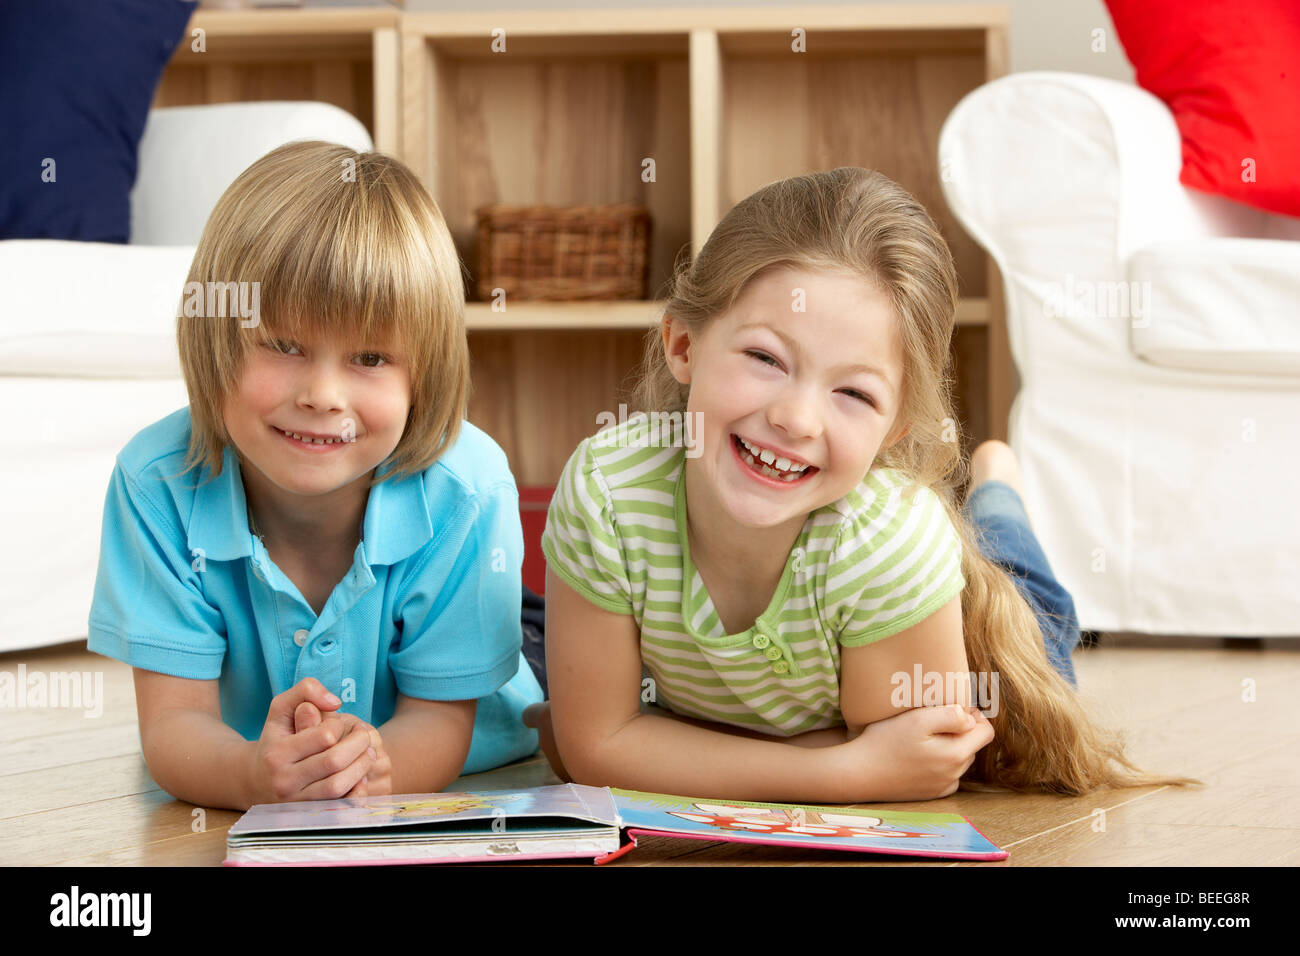 Two Young Children Reading Book at Home - Stock Image